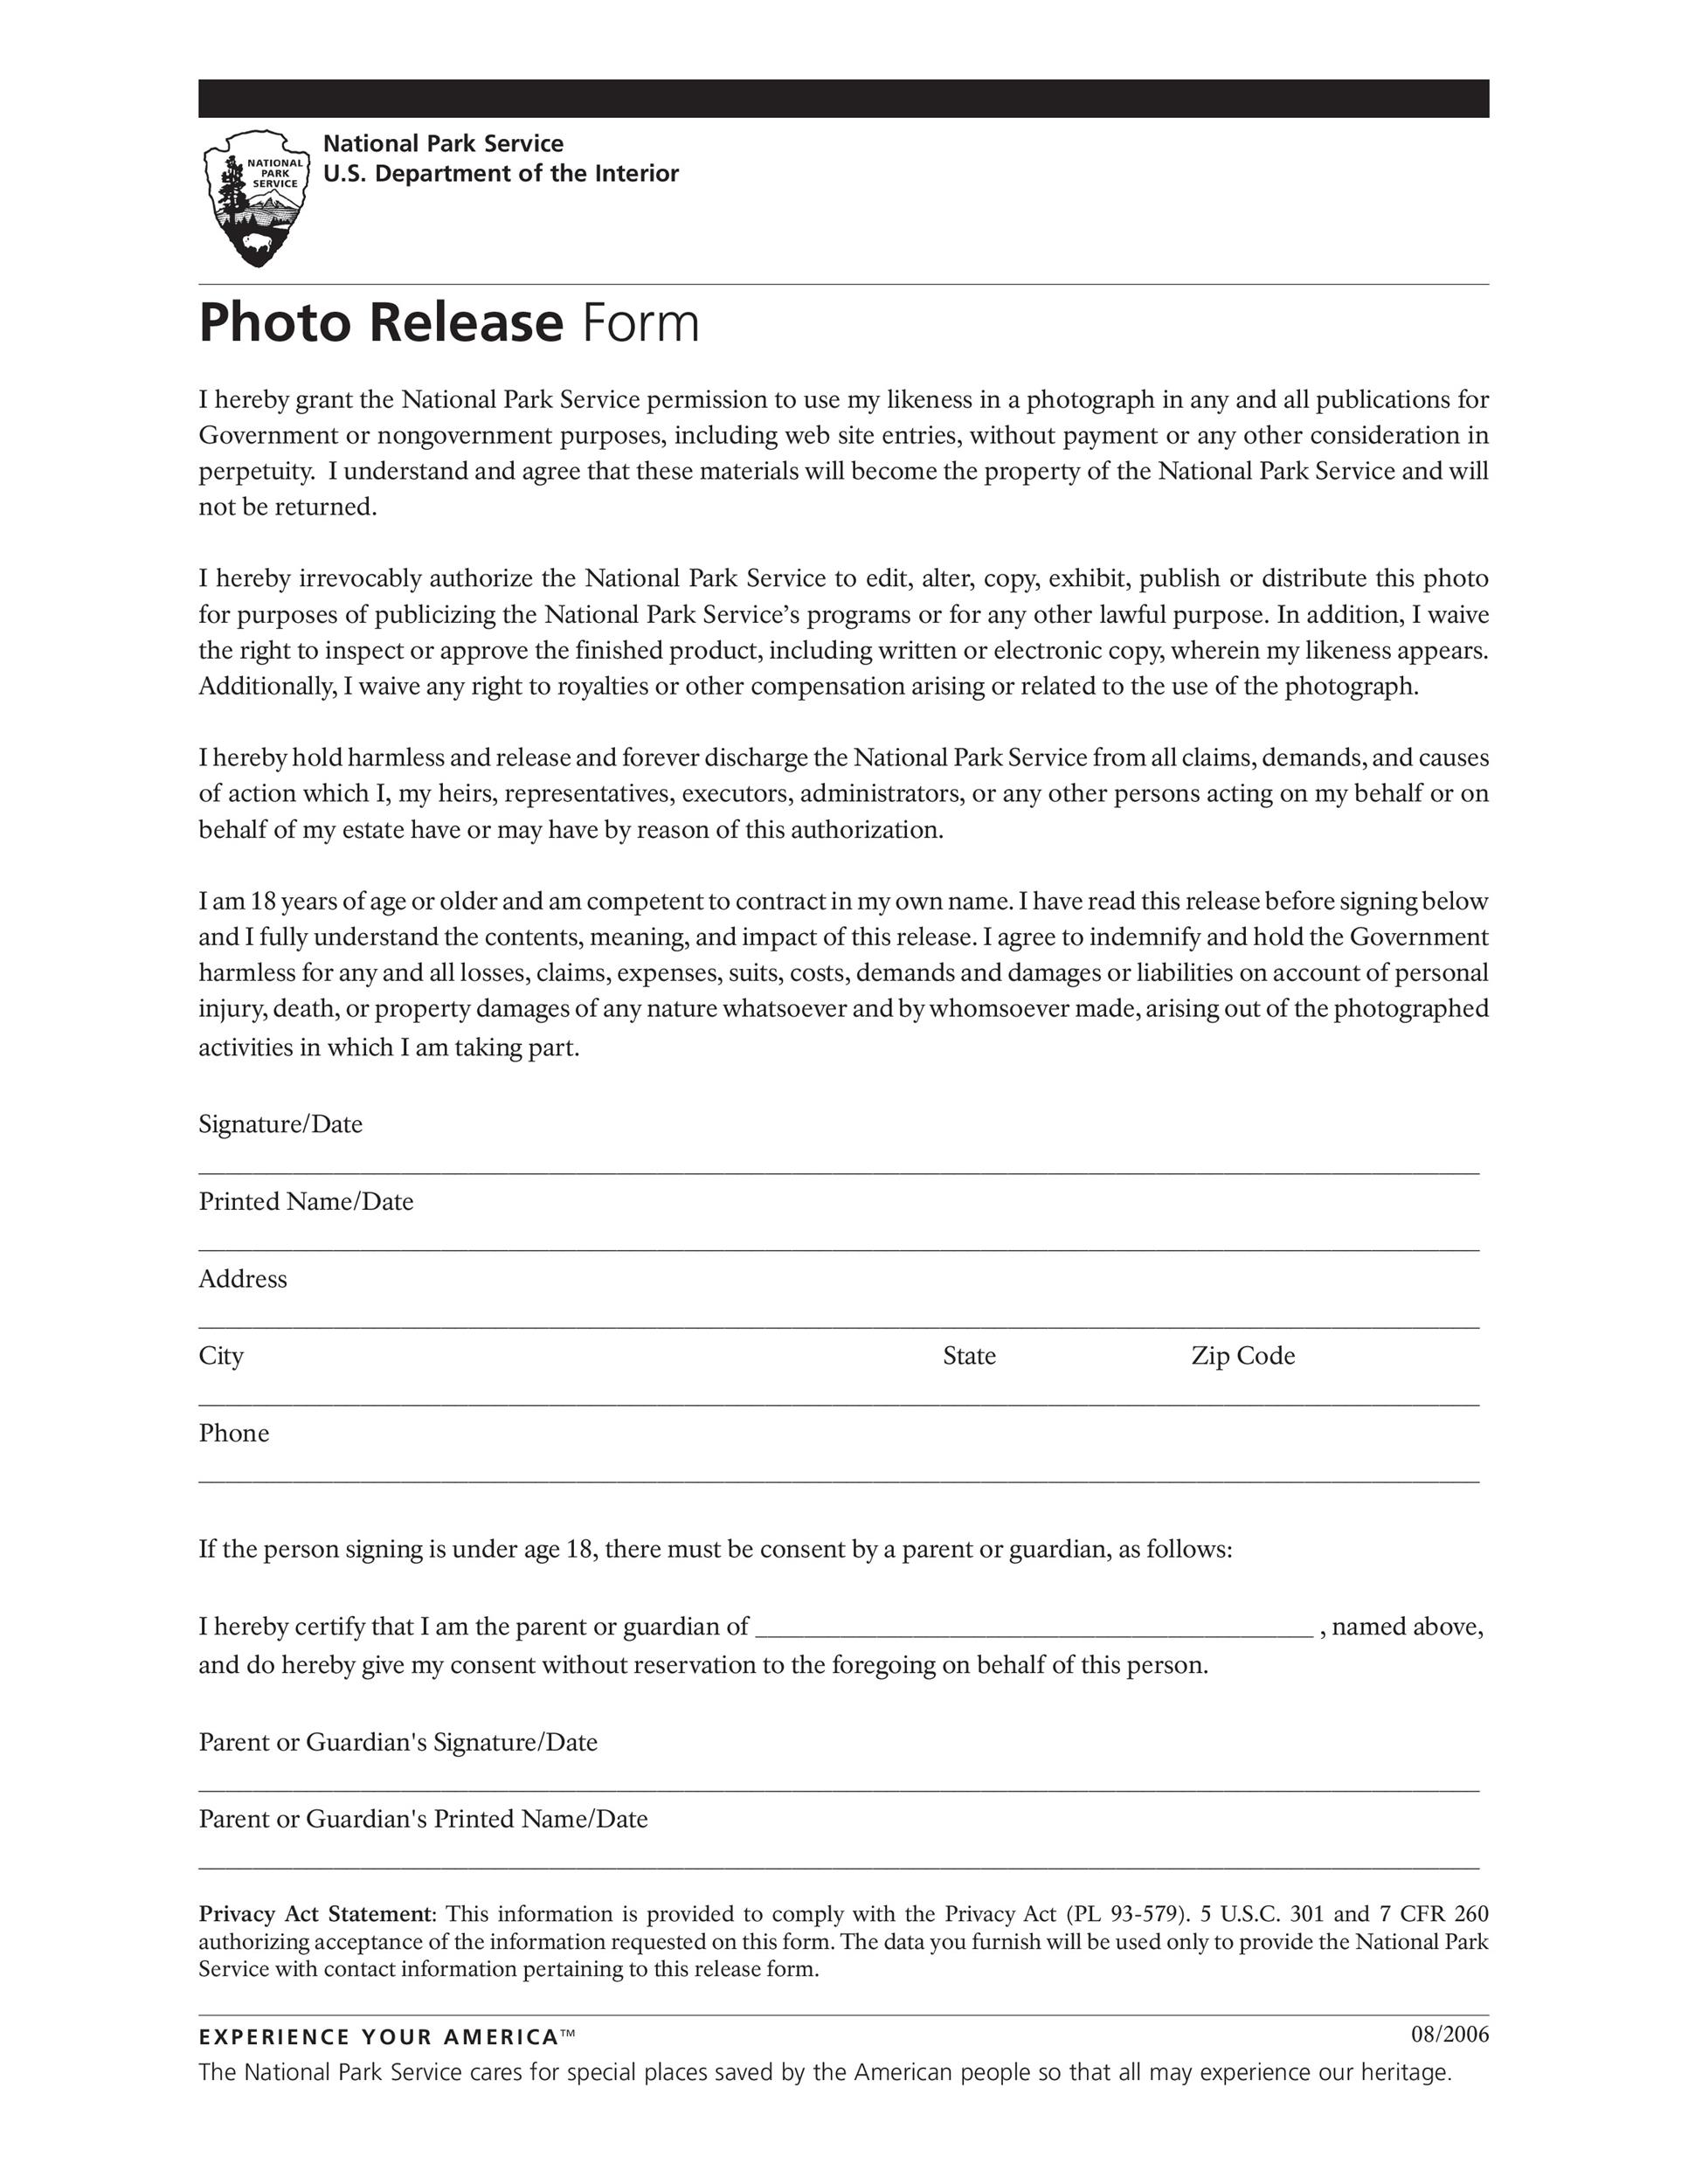 Free photo release form 37